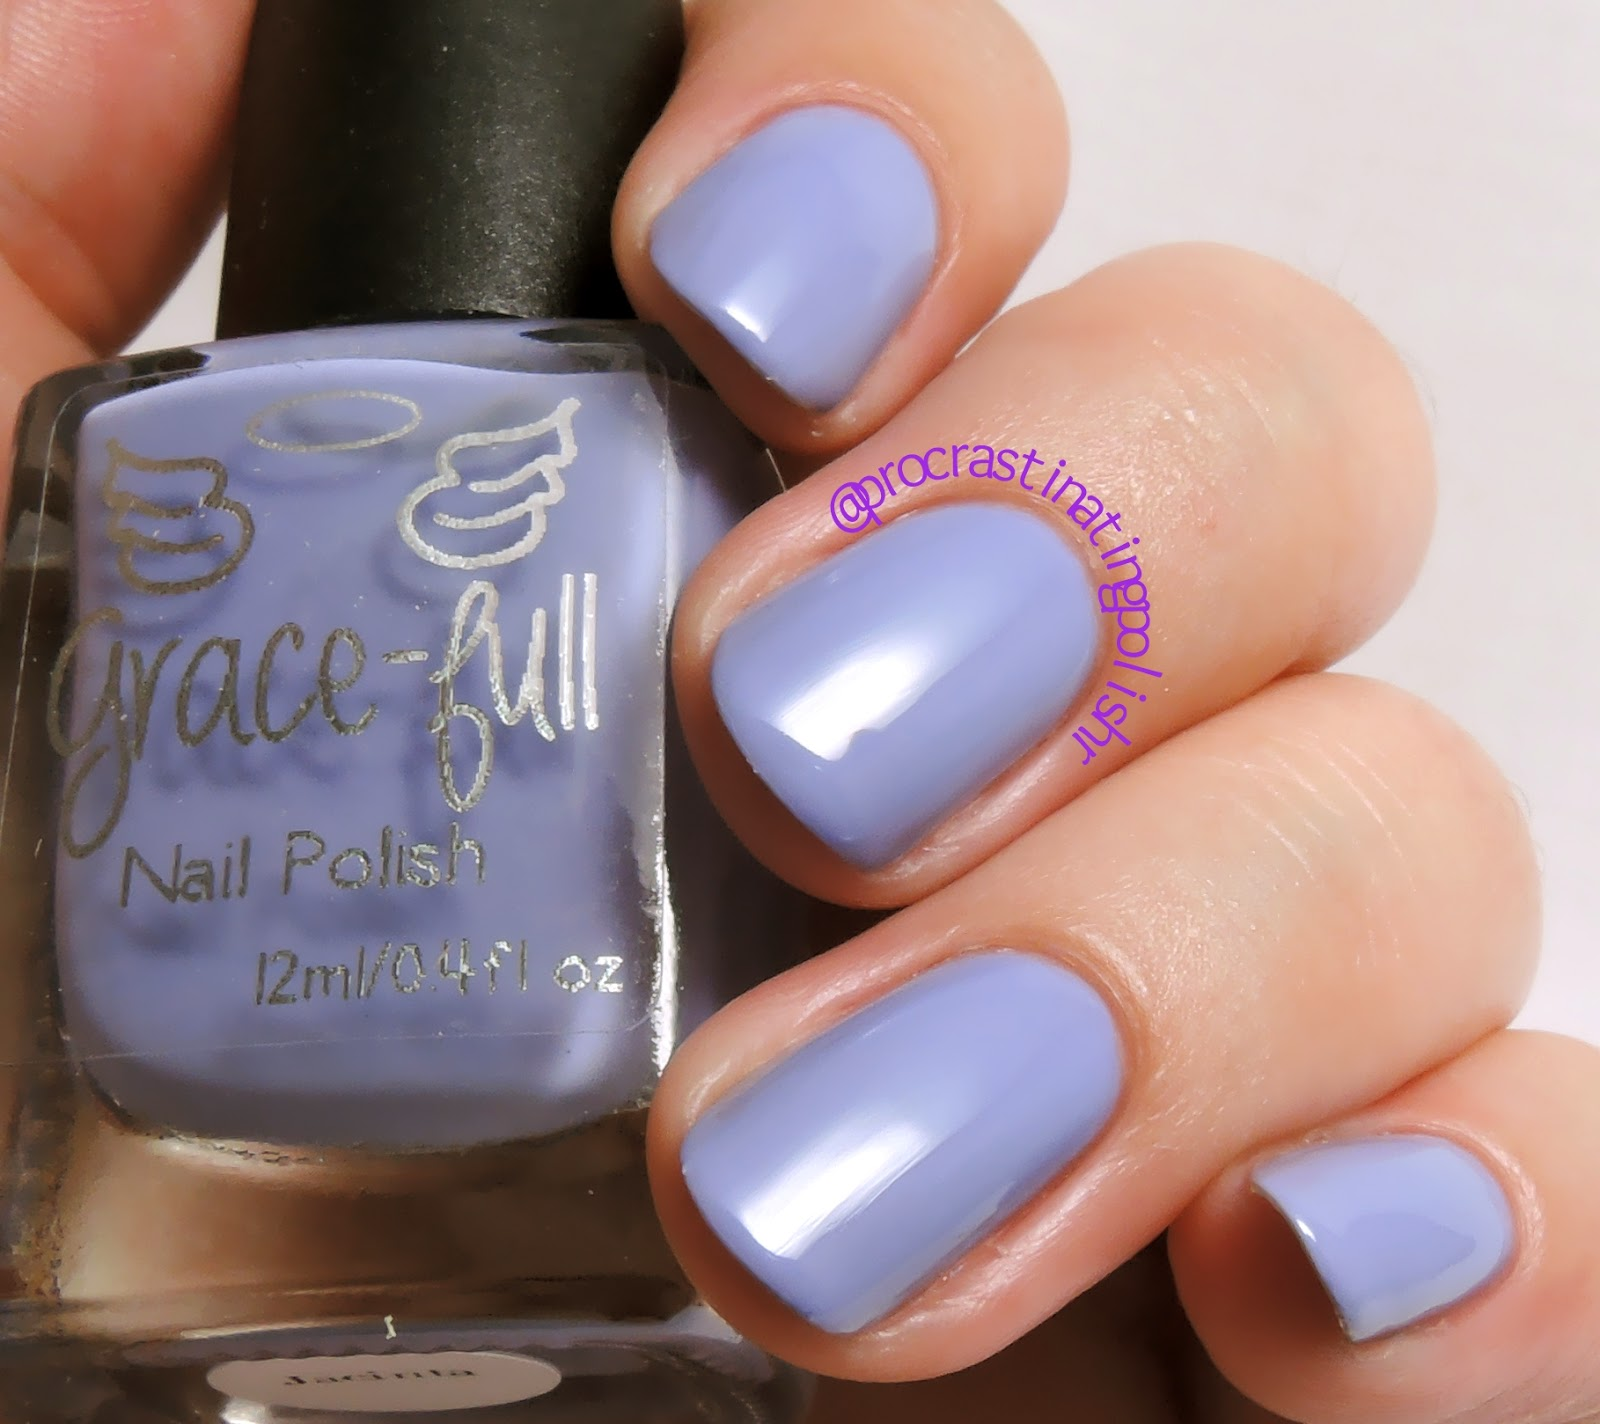 Grace-full Nail Polish - Jacinta | Dreamy Beach